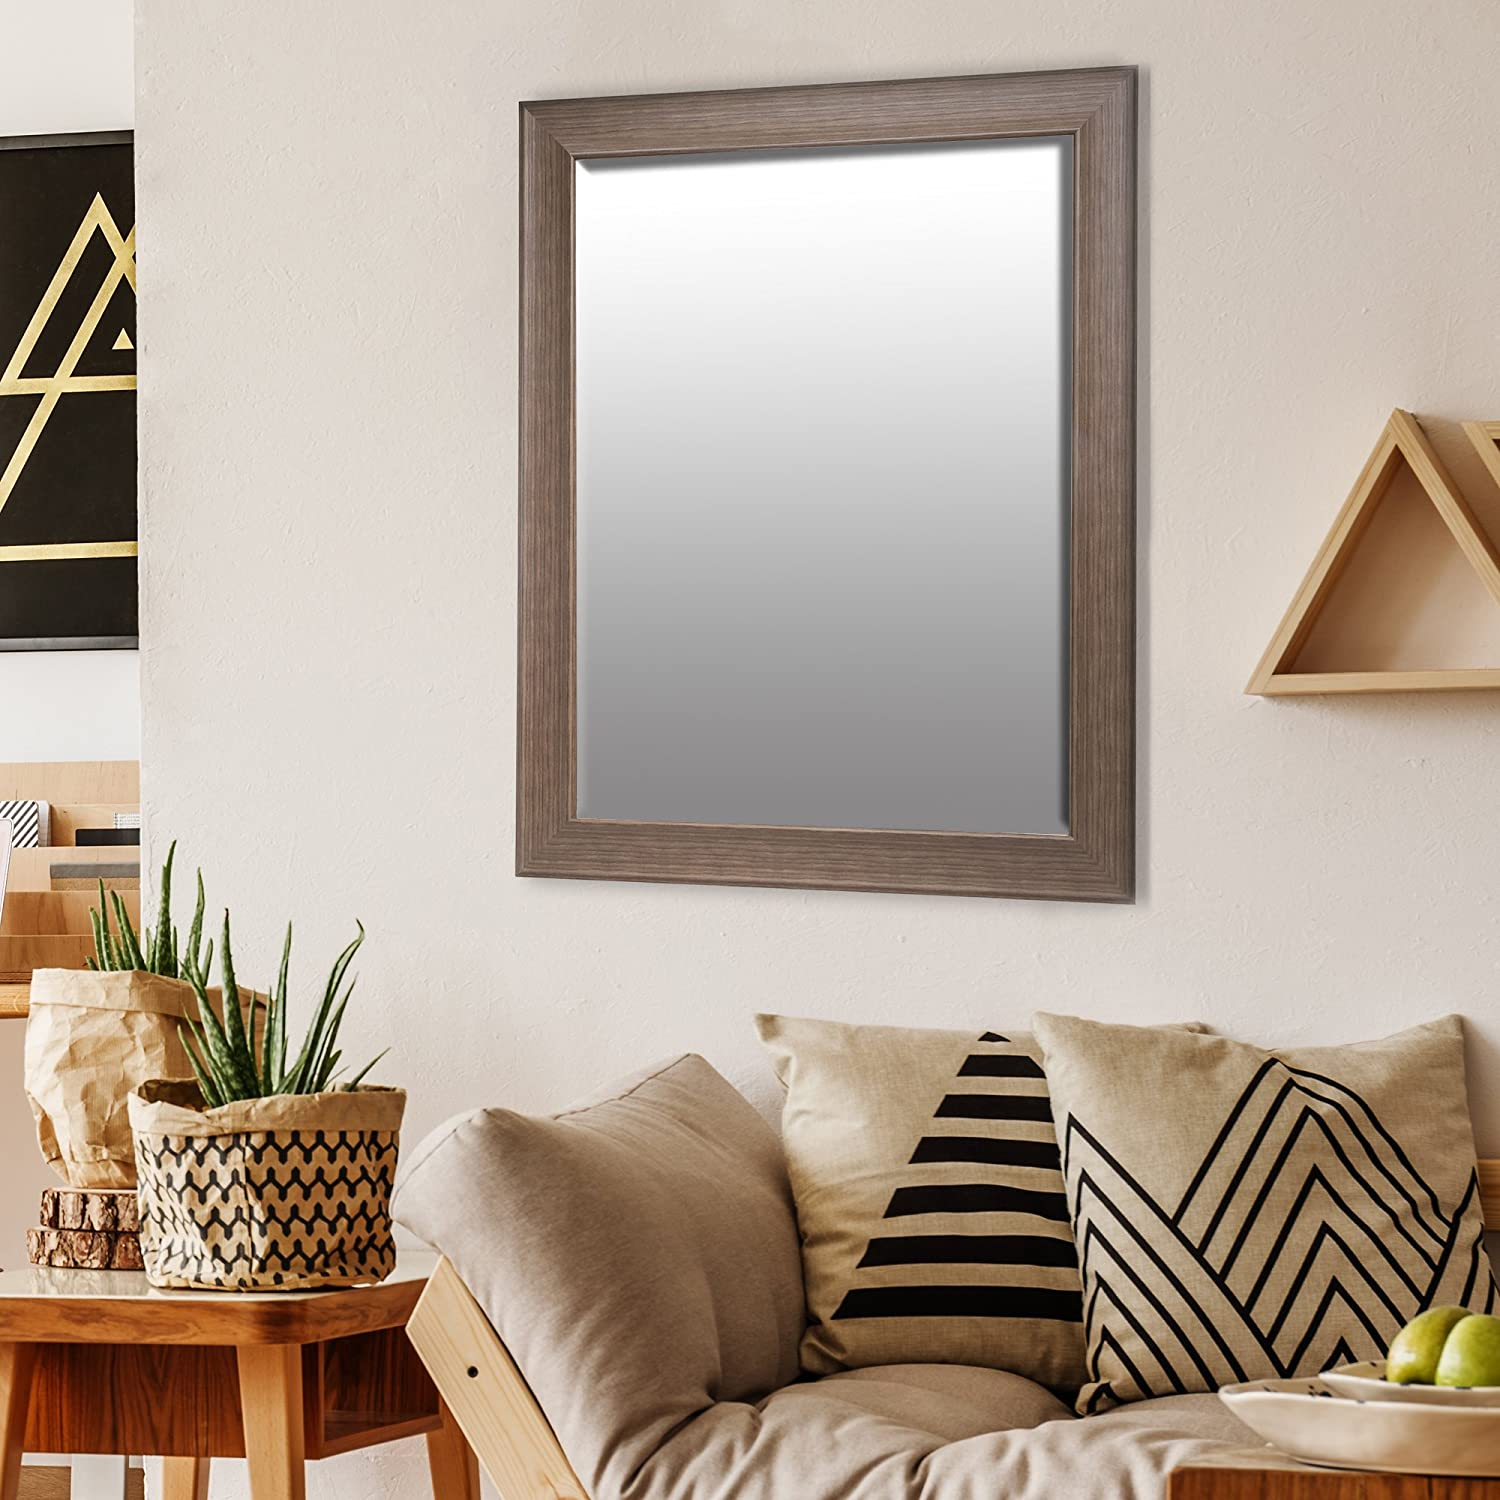 Patton Wall Decor 22x28 Traditional Taupe Beveled Wall Mirror